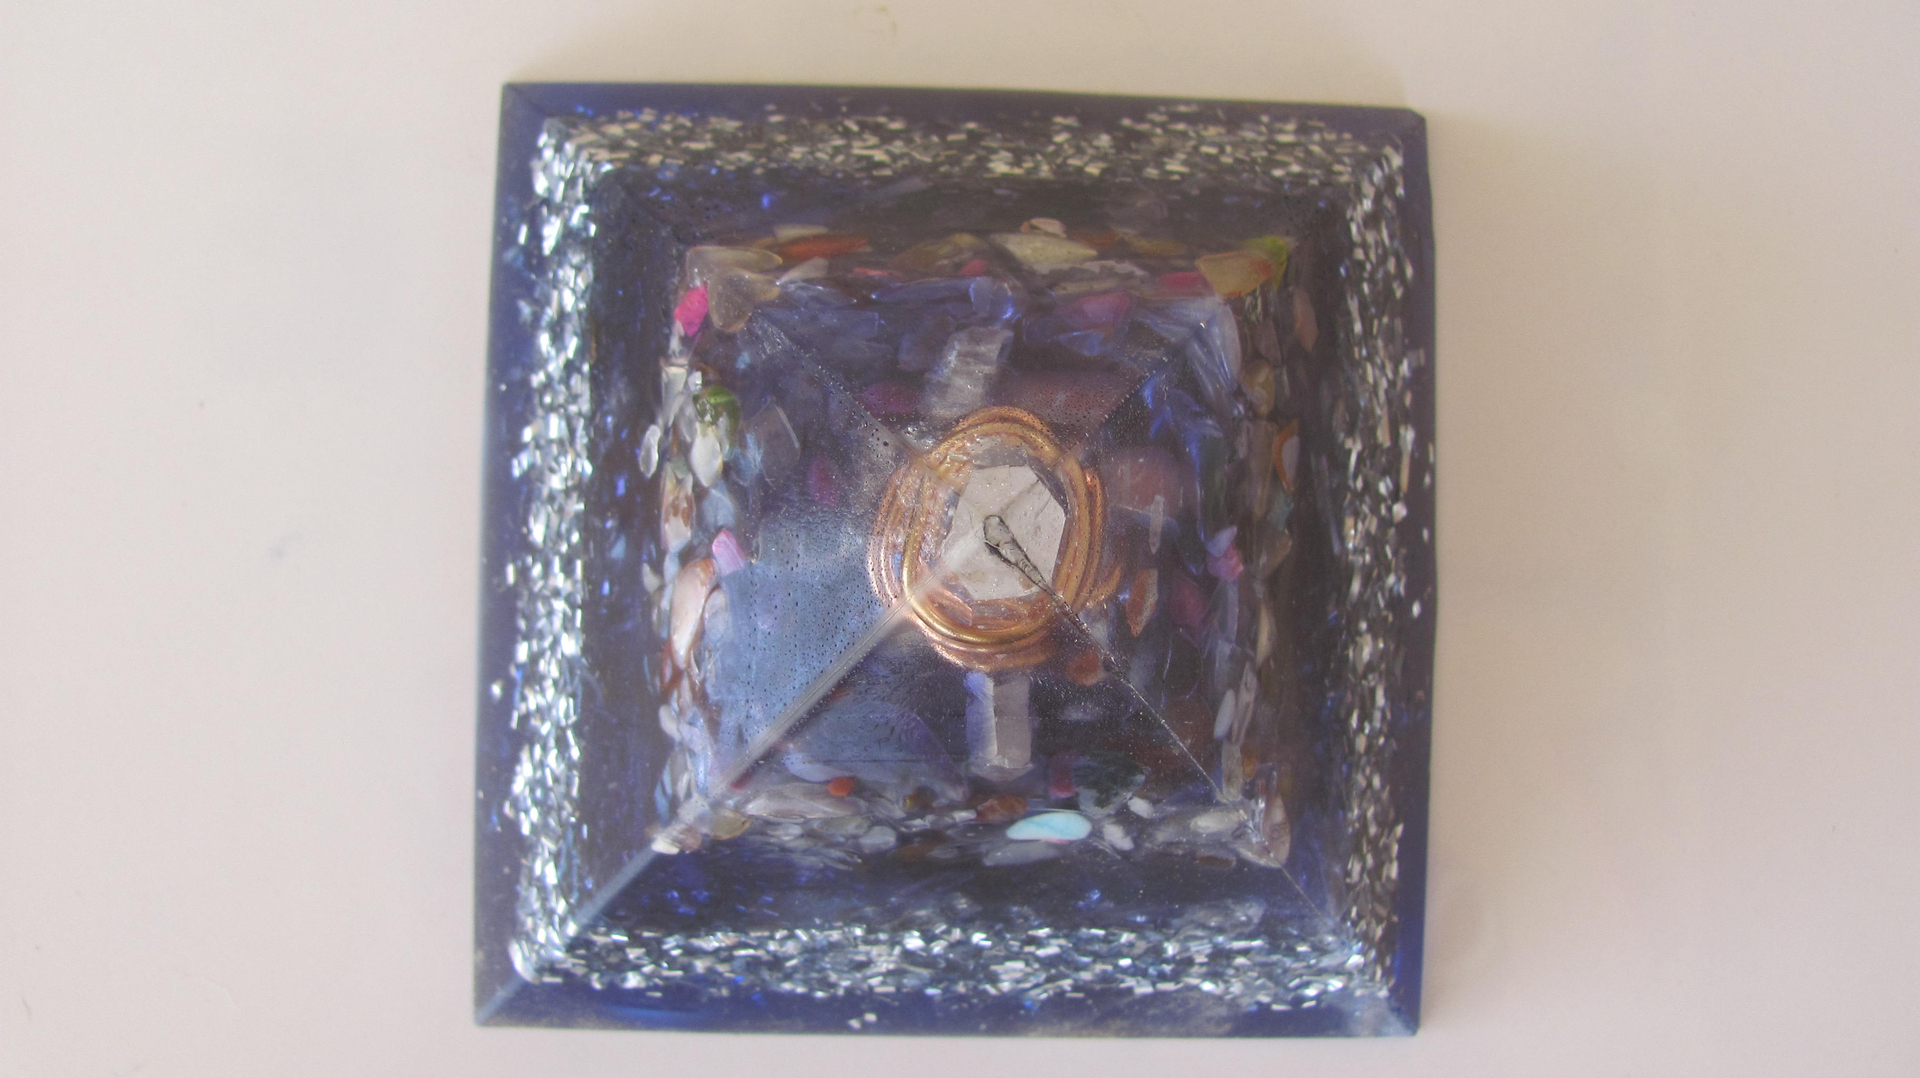 Pyramids Copper To Aluminum Wiring A Double Terminated Clear Quartz Crystal Wrapped Three Times In Wire Is Placed The Crown Position Of This Multi Layer Pyramid